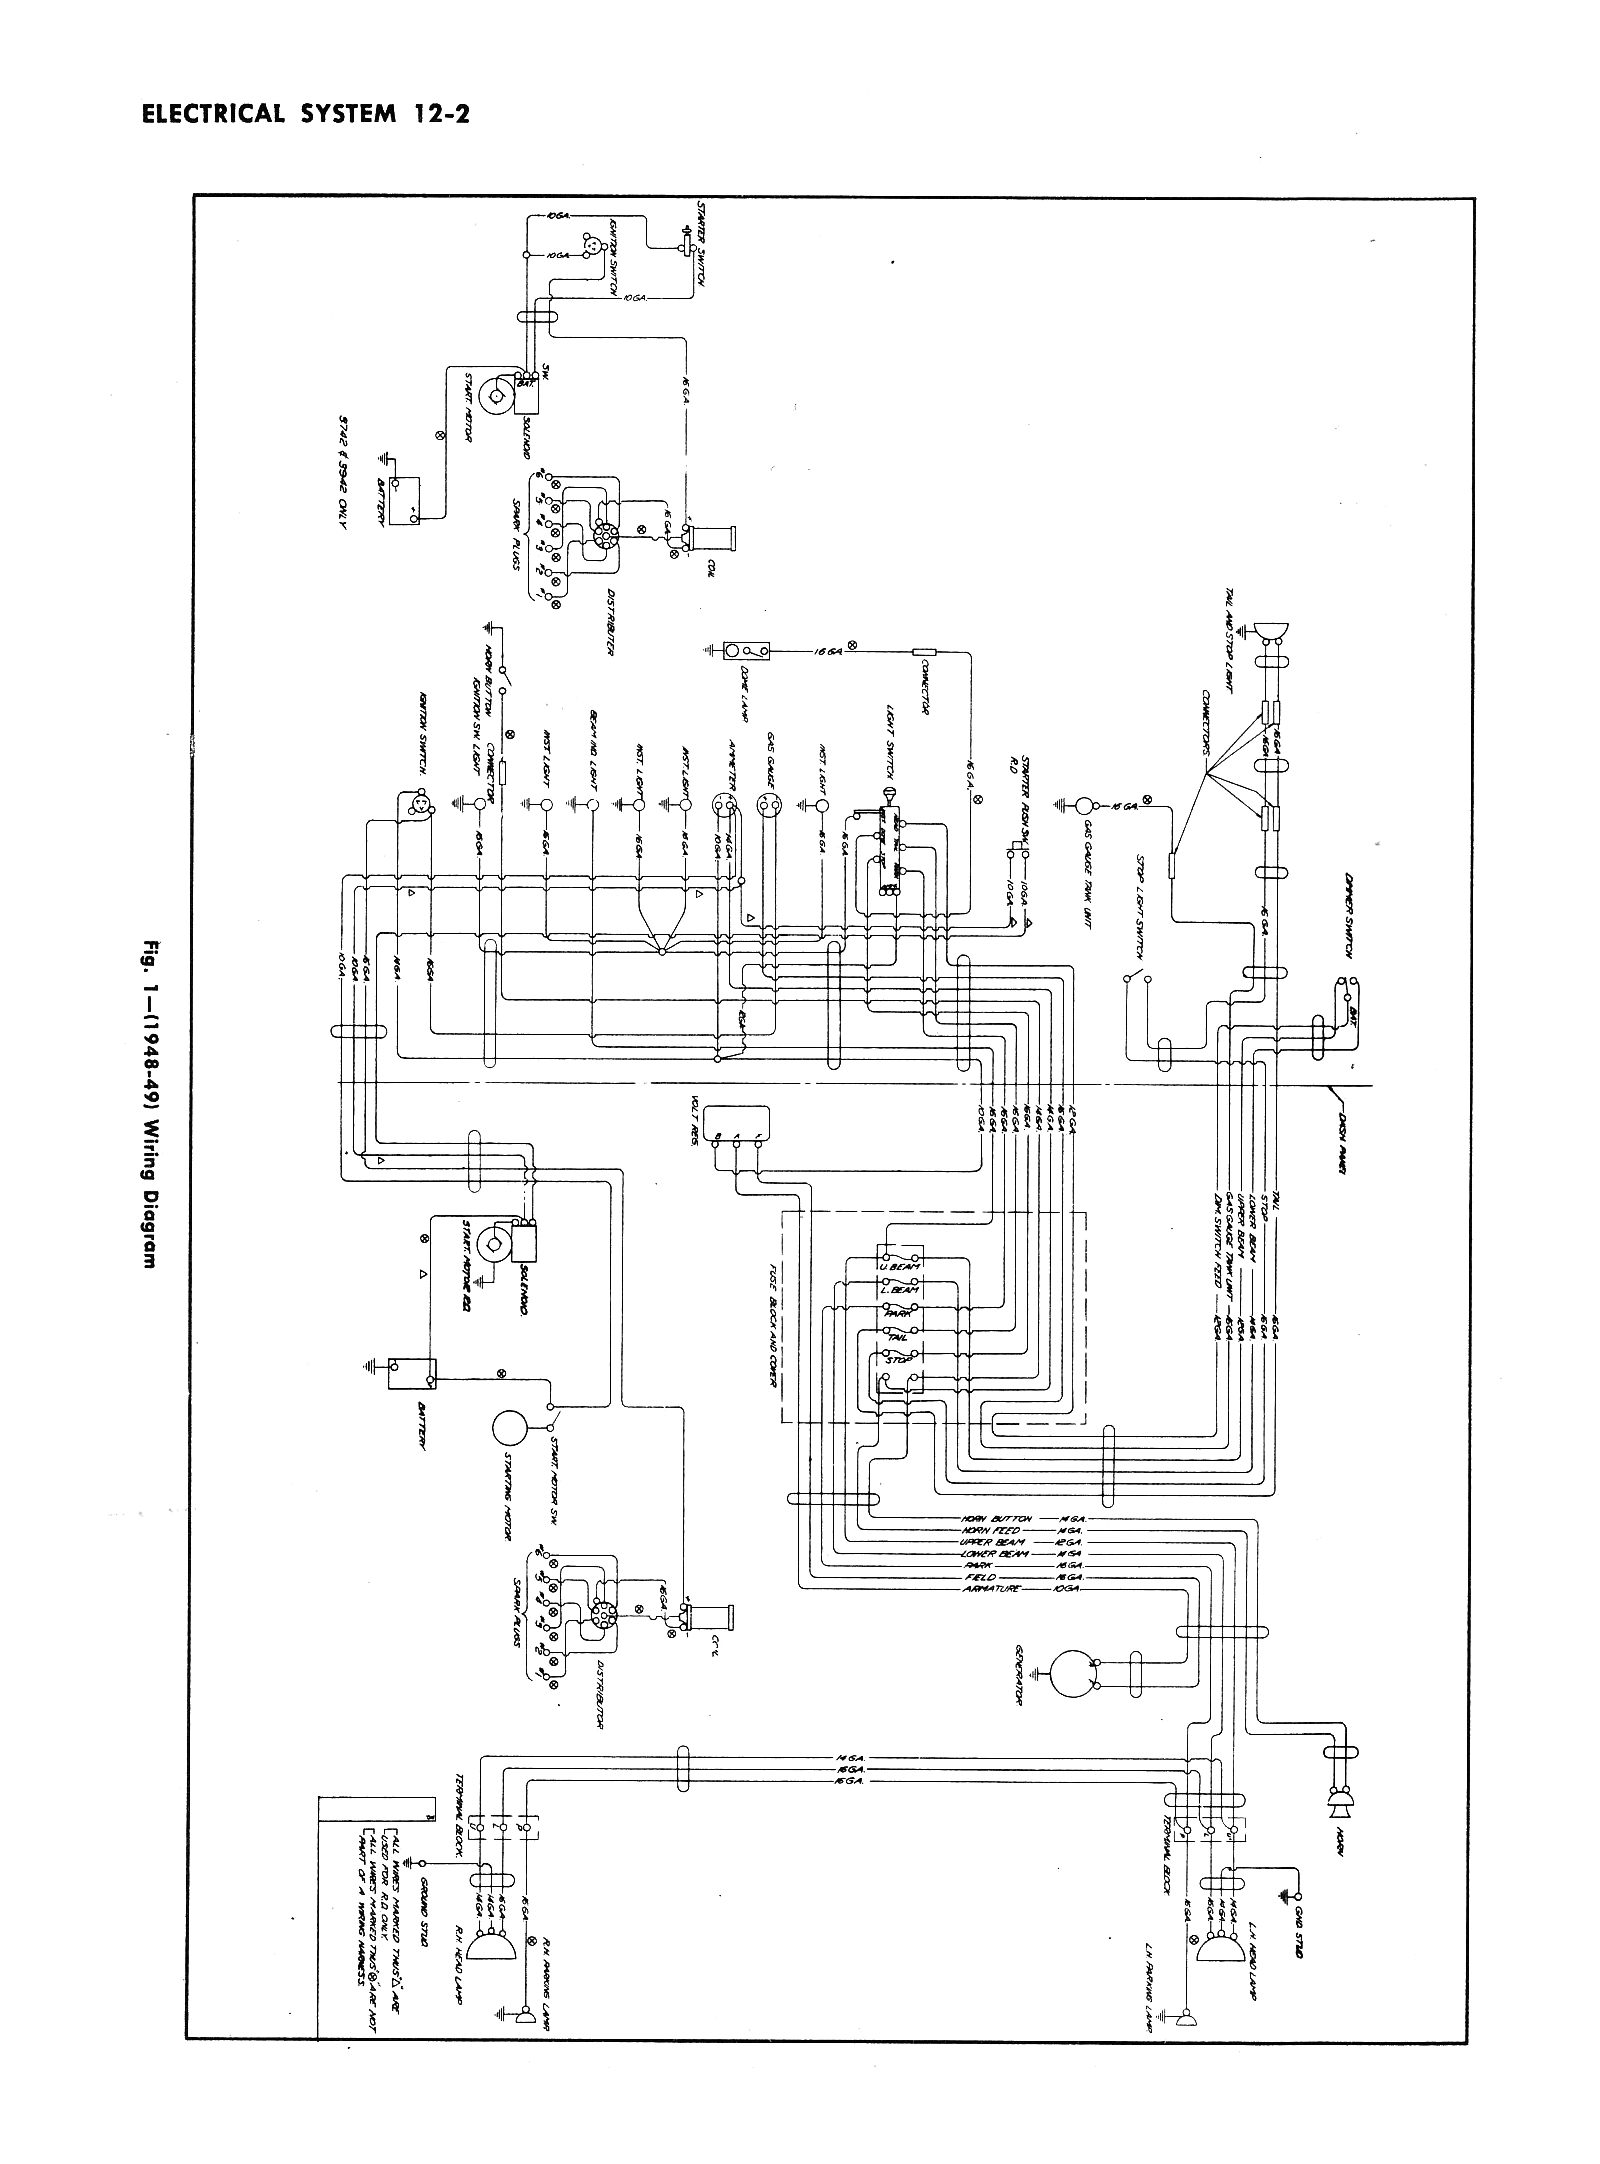 Wiring additionally V8 Engine Diagram together with 2016 Honda Hr V Accessories additionally 1930 Straight Eight Buick Engine Diagram further 1955 Chevy Nomad Vin Number Location. on 1927 buick wiring diagram